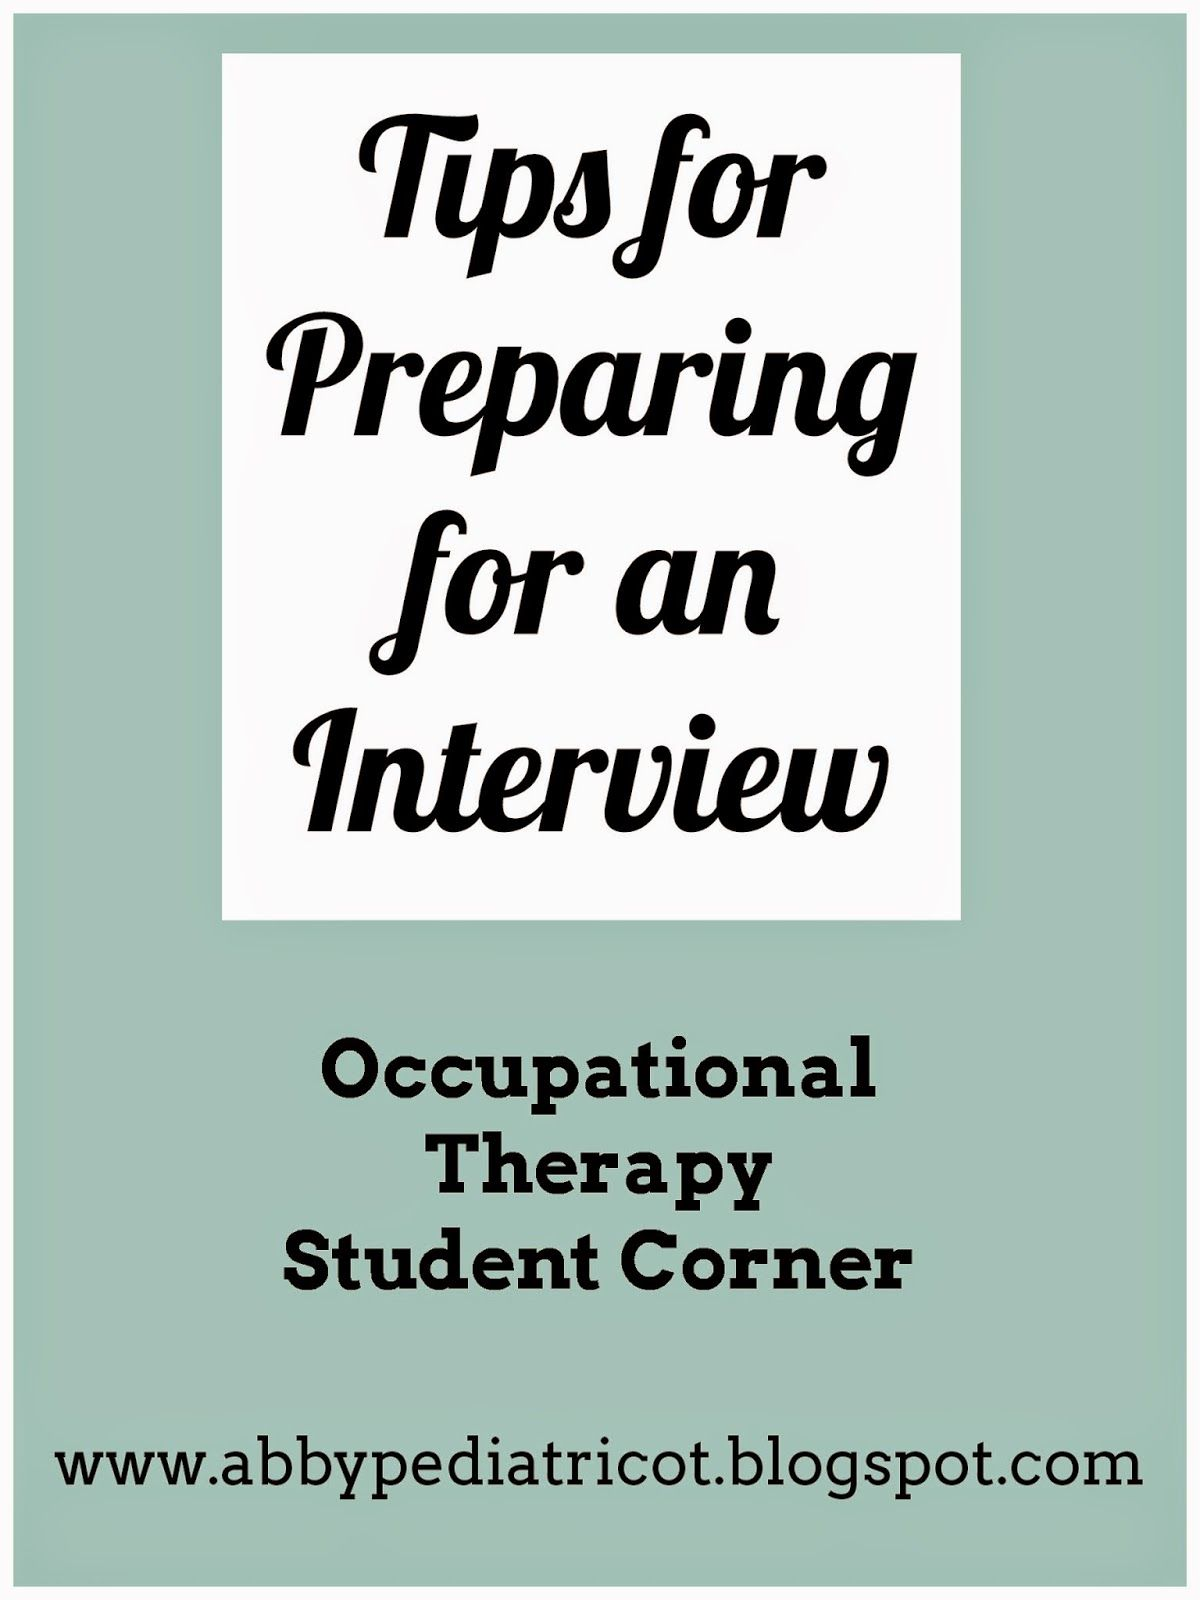 Ot Cafe Ot Student Corner Preparing For An Interview Ocupational Therapy Occupational Therapy Assistant Occupational Therapy Schools